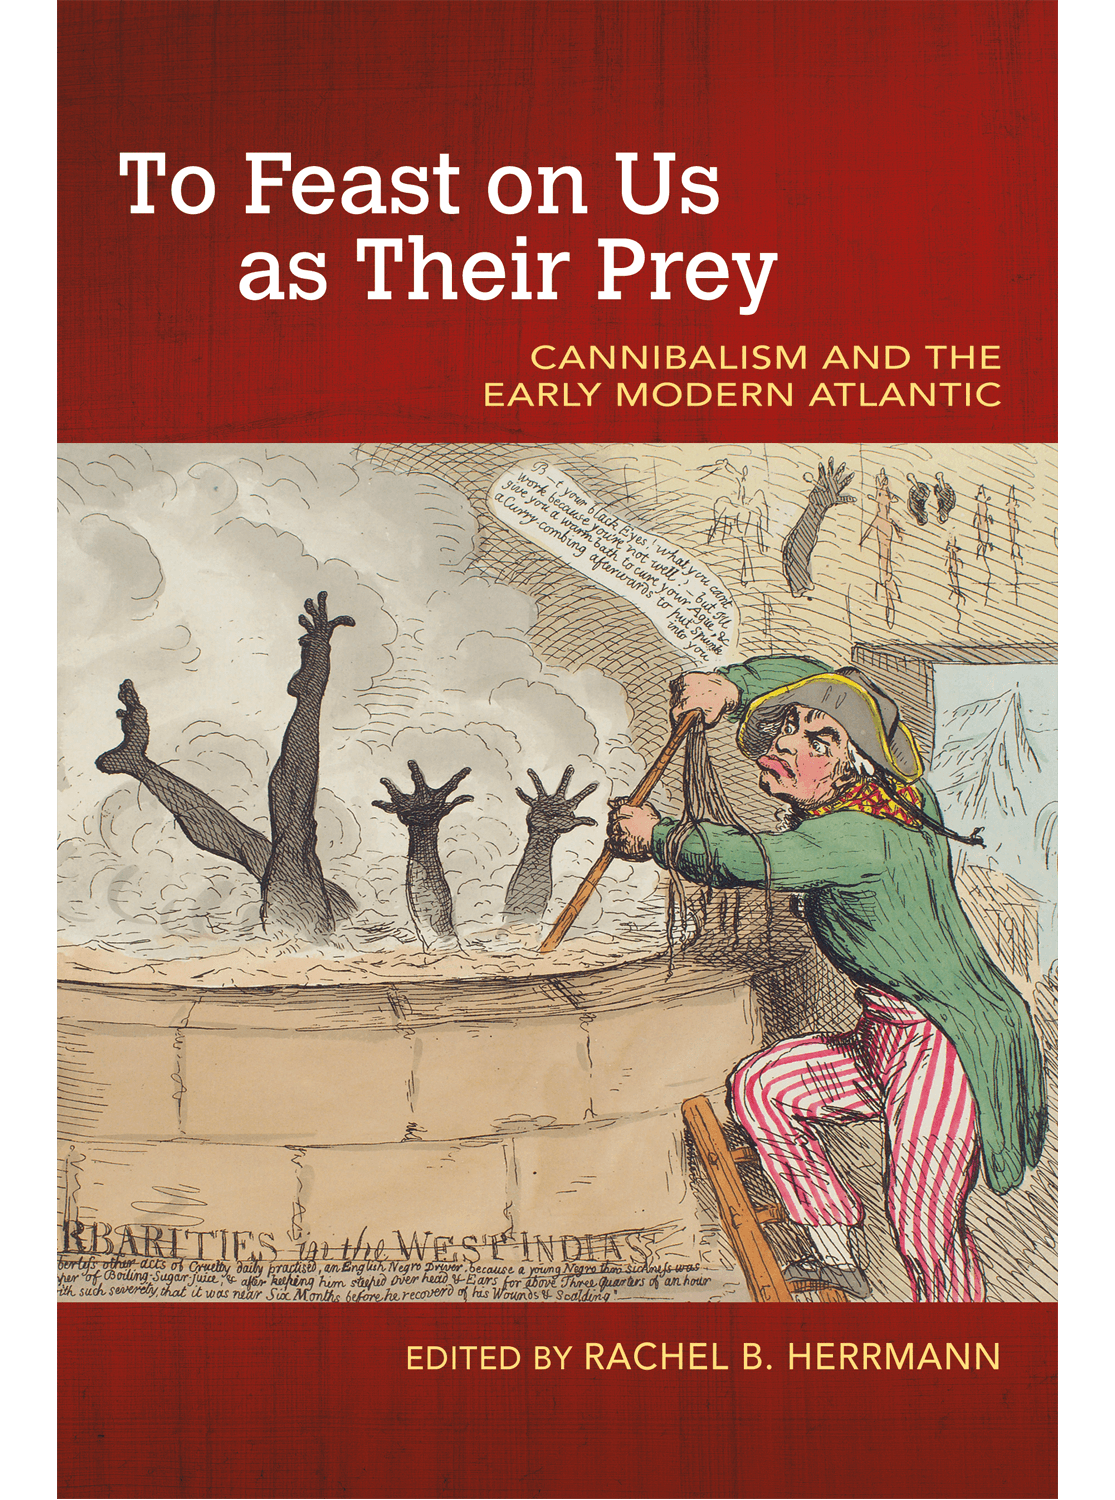 To Feast on Us as Their Prey | University of Arkansas Press